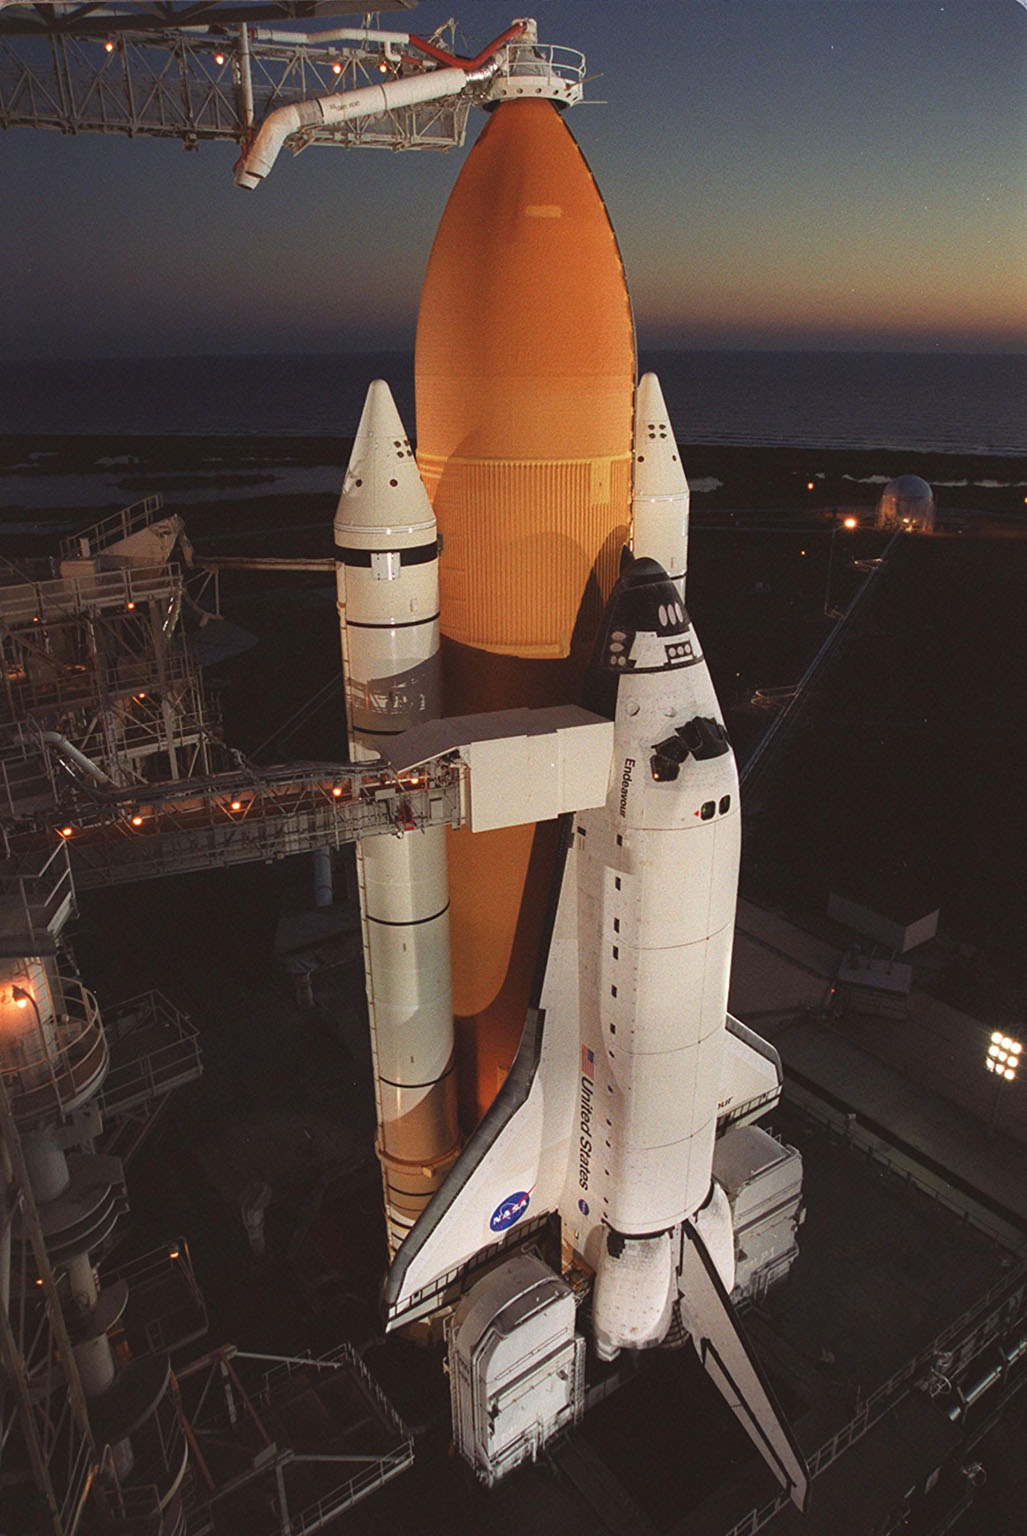 As dawn breaks on the horizon, Space Shuttle Endeavour is seen standing ready for launch, targeted for 10:06 p.m. EST tonight on mission STS-97 to the International Space Station. The Rotating Service Structure was rolled back just before dawn. On top of the orange external tank is the Gaseous Oxygen Vent Arm and its vent hood, known as the ?beanie cap.? The hood is raised to clear the external tank 2.5 minutes before launch. The orbiter carries the P6 Integrated Truss Segment containing solar arrays that will be temporarily installed to the Unity connecting module by the Z1 truss, recently delivered to and installed on the Station on mission STS-92. The two solar arrays are each more than 100 feet long. They will capture energy from the sun and convert it to power for the Station. Two spacewalks will be required to install the solar array connections